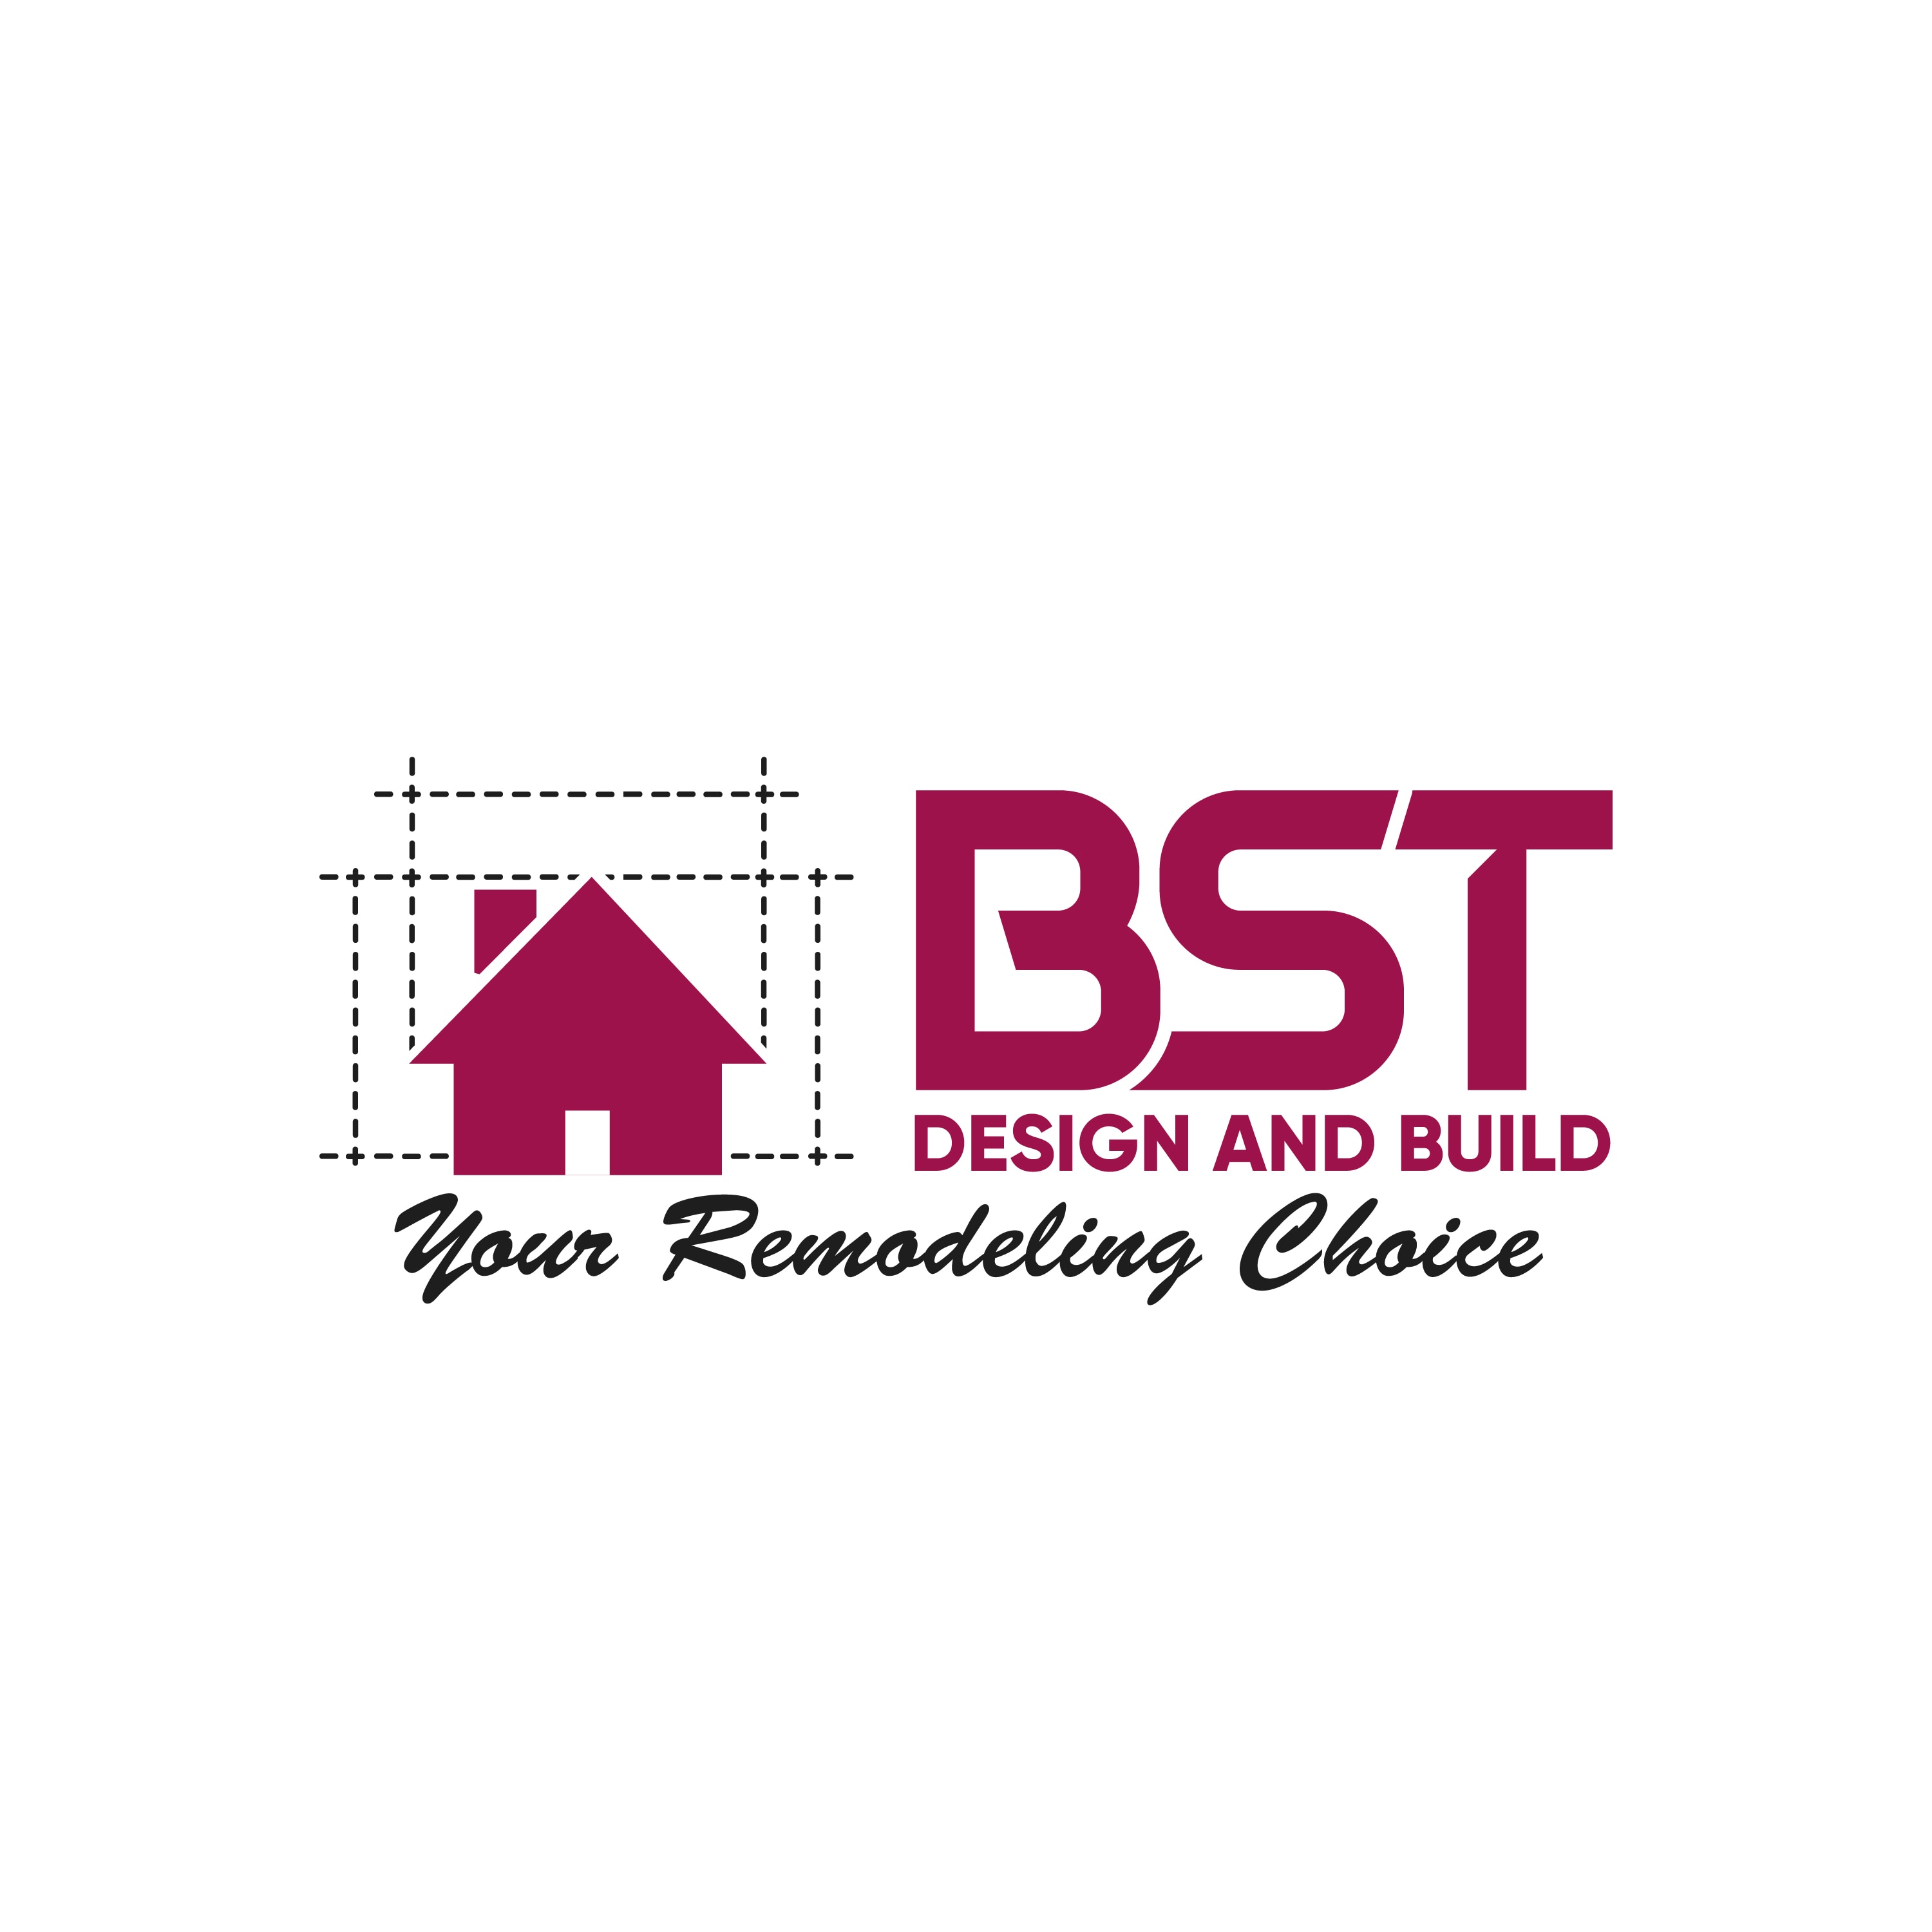 BST Design and Build logo